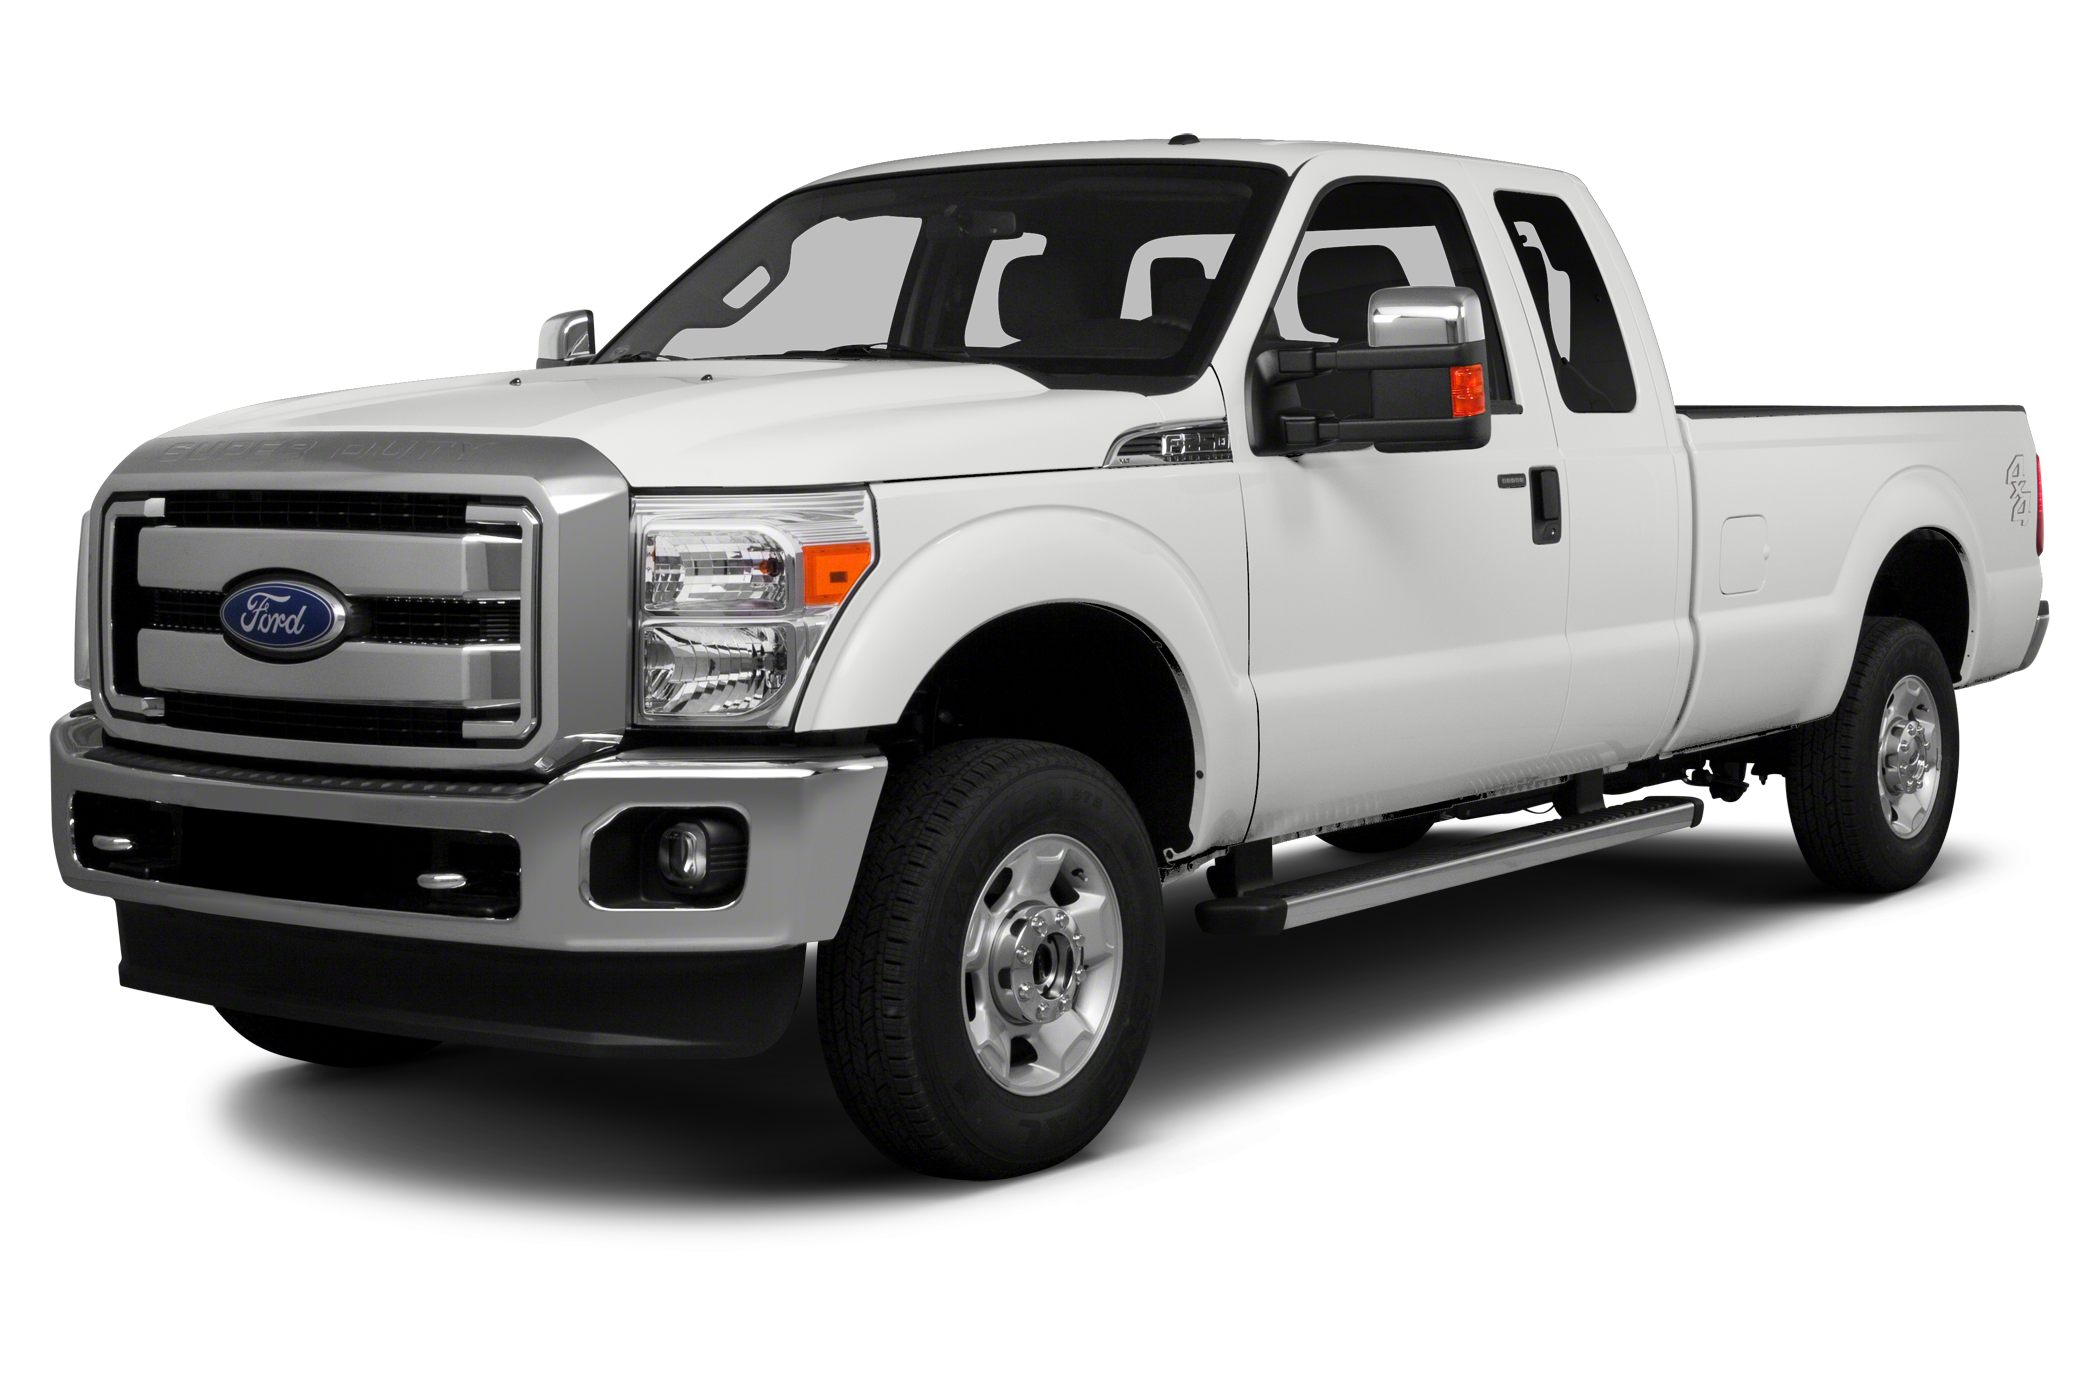 2015 Ford F250 Lariat Crew Cab Pickup for sale in Eastland for $58,625 with 2 miles